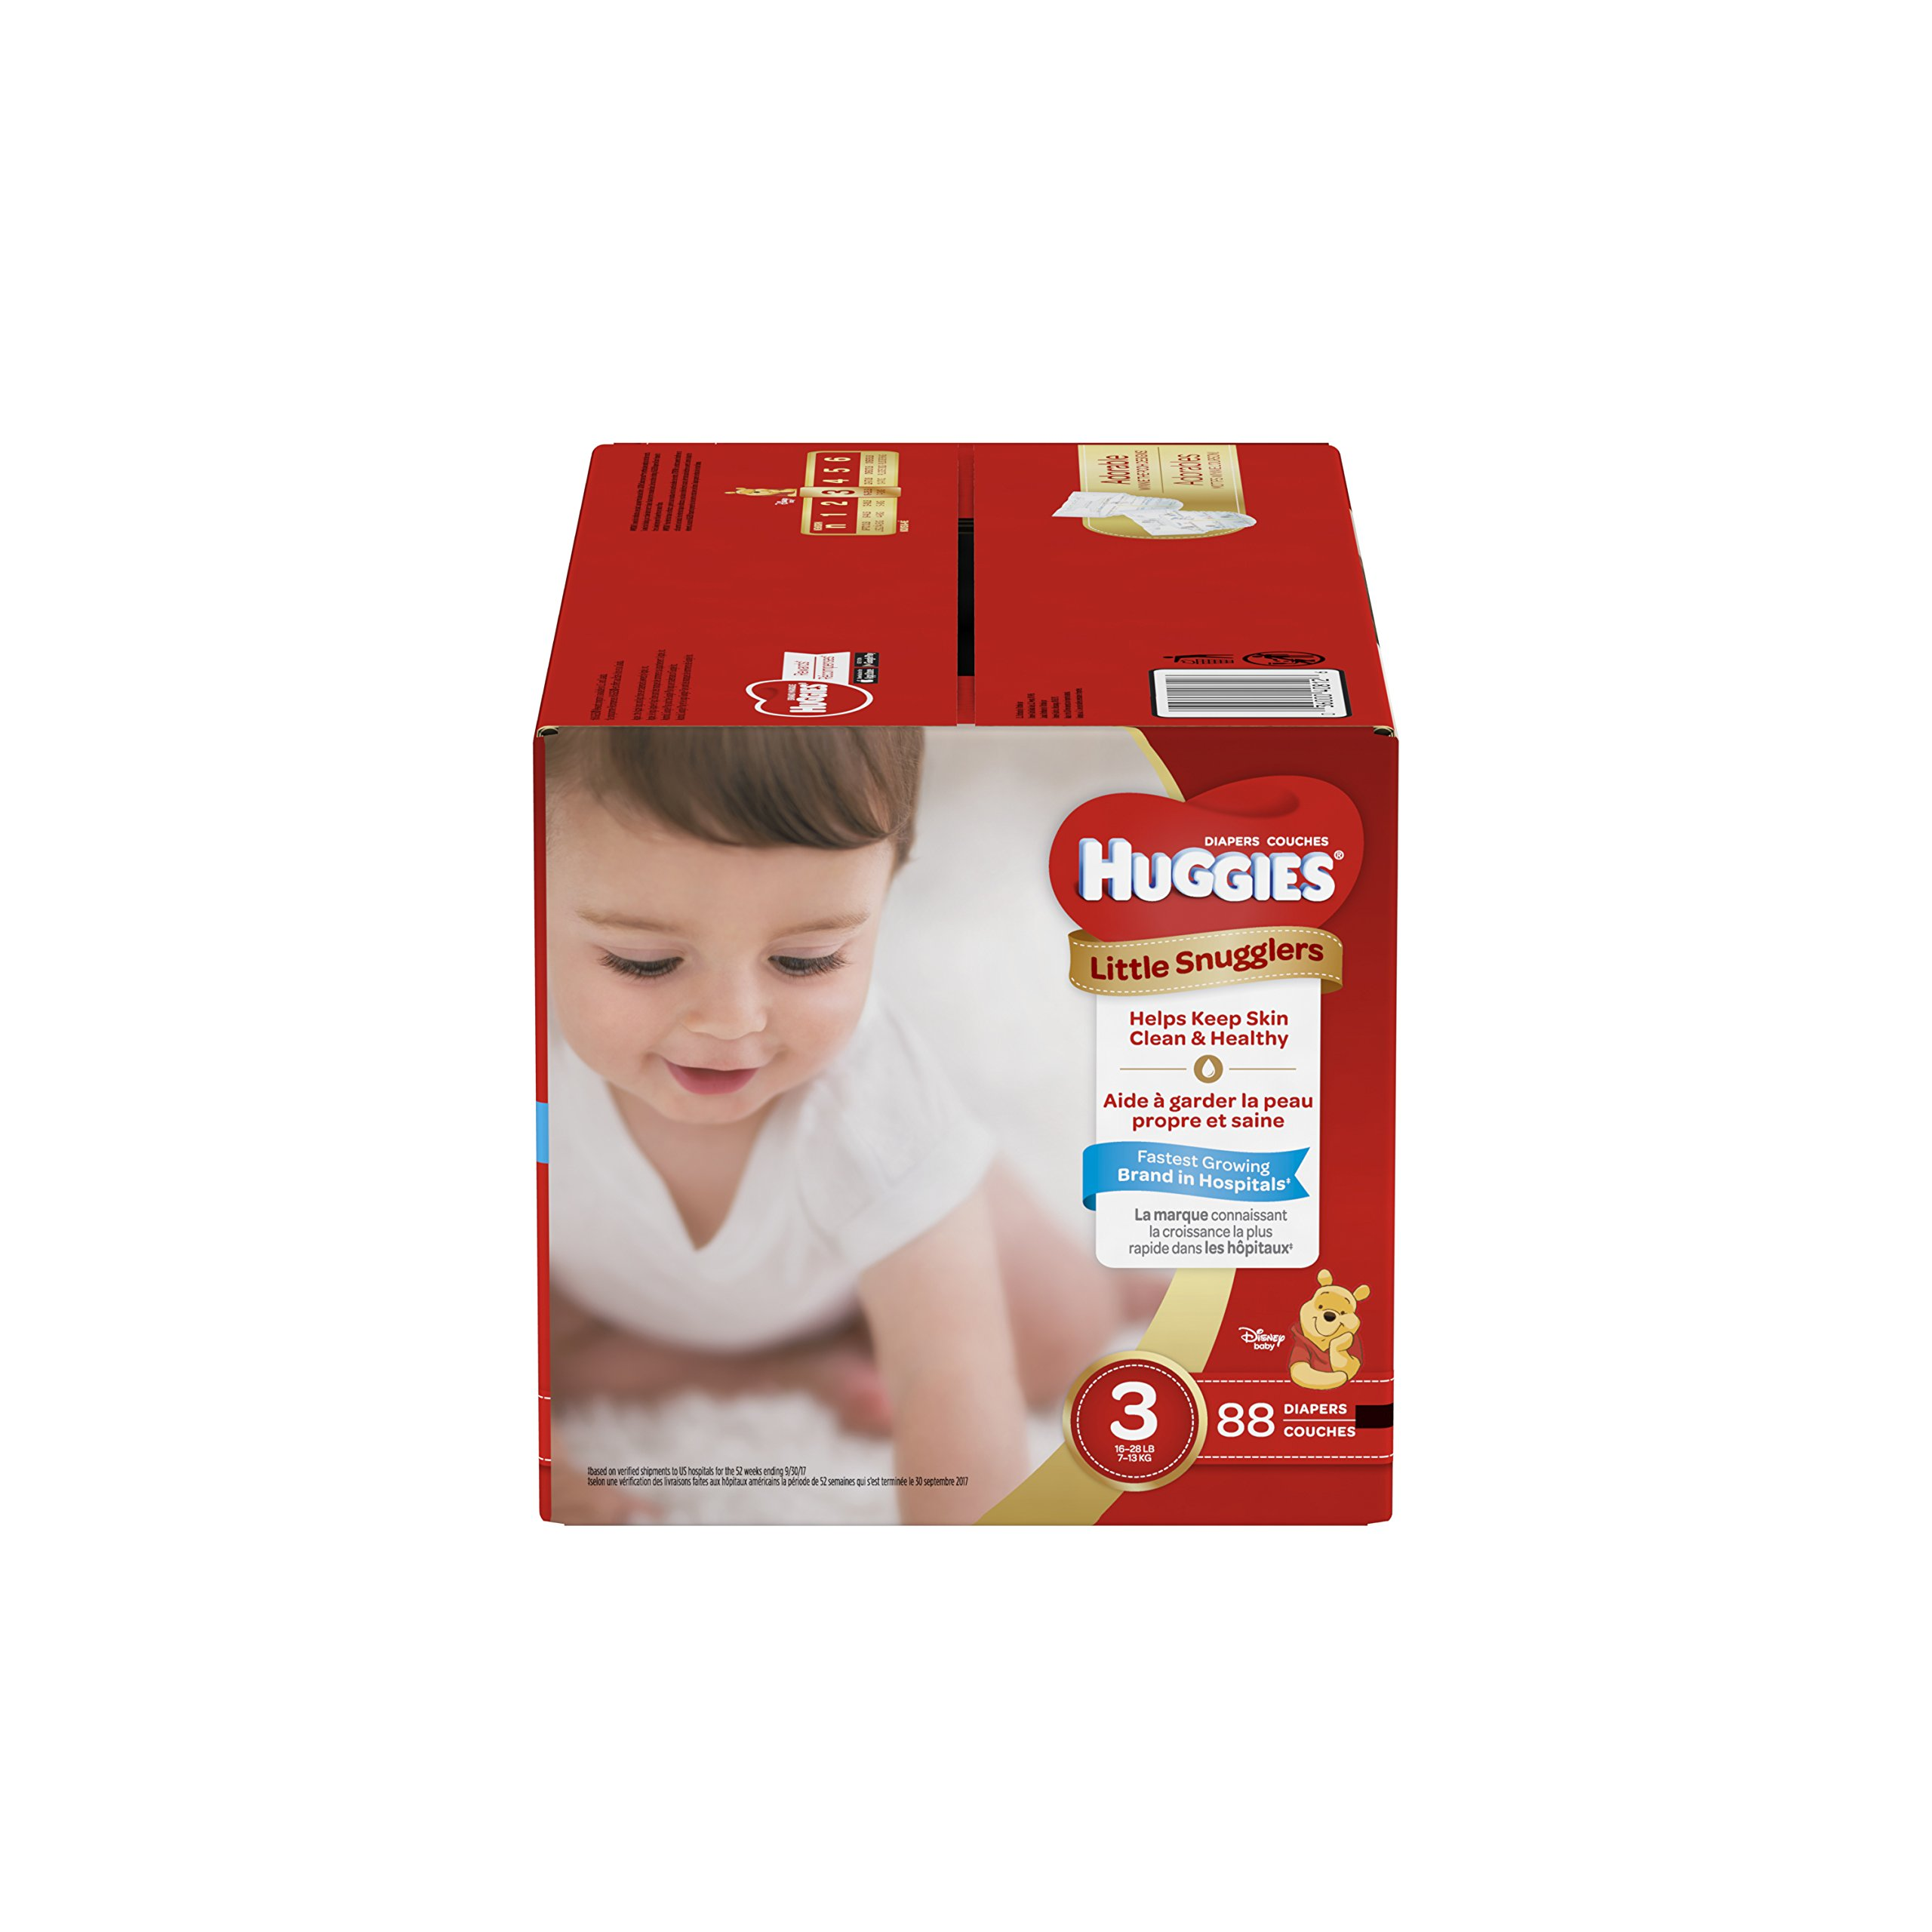 HUGGIES Little Snugglers Baby Diapers Size 3 88 Count